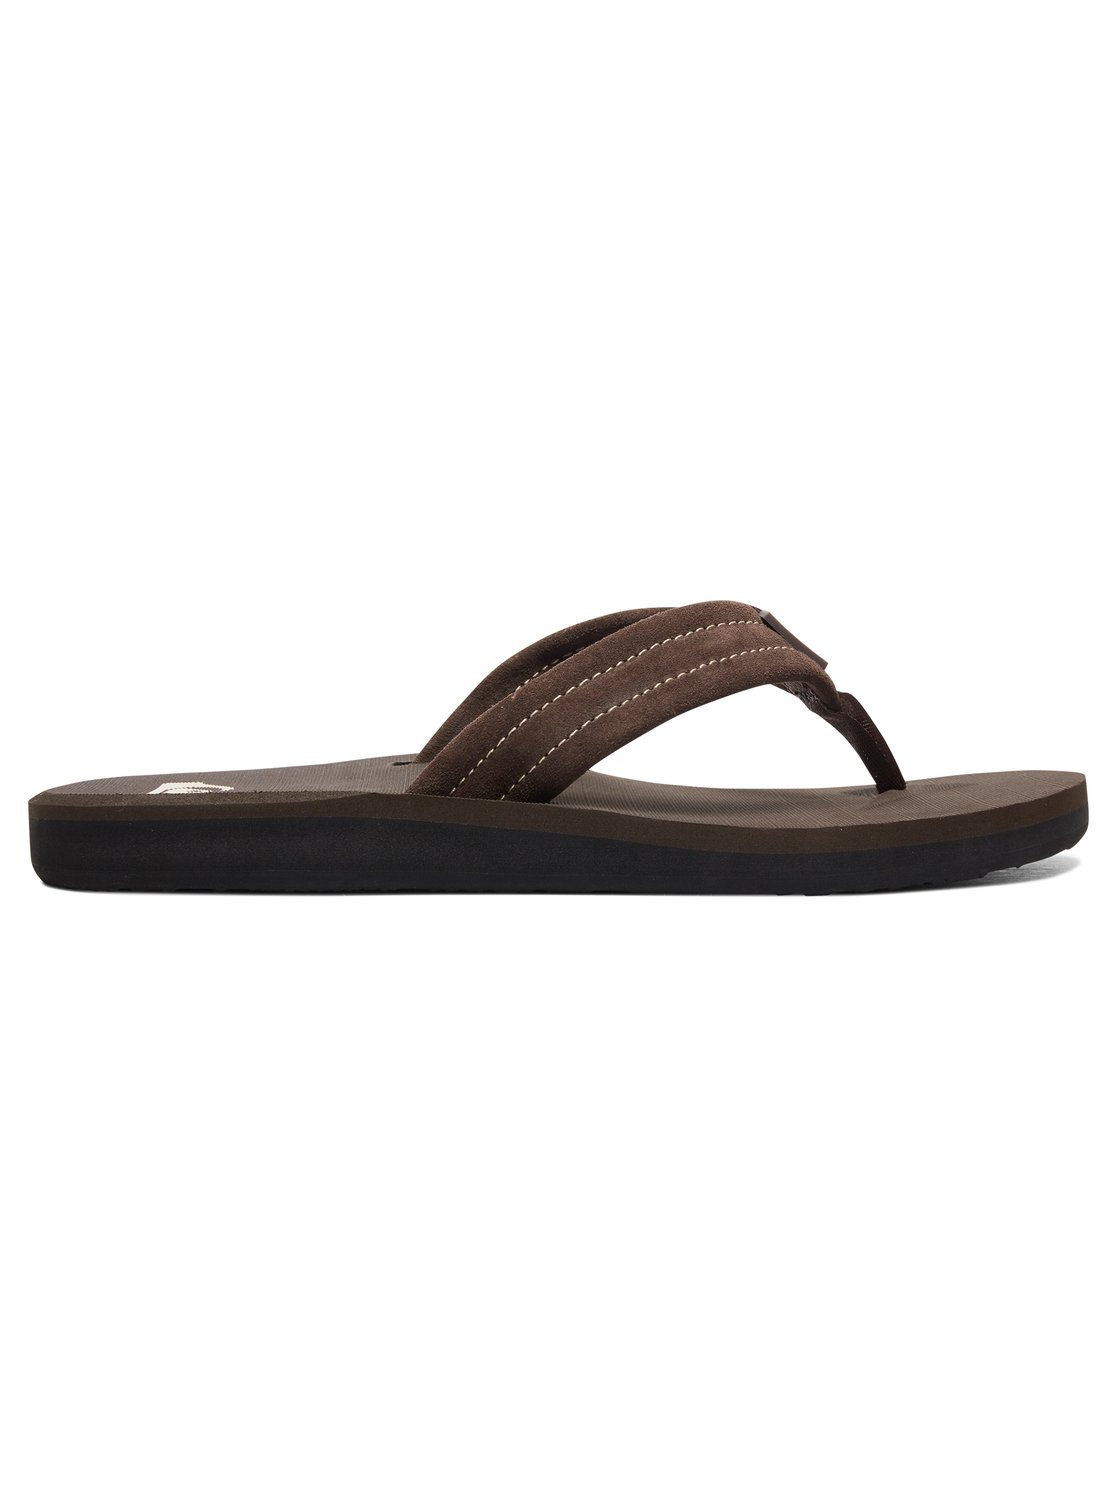 Carver Leather Sandals 888256777439 Quiksilver